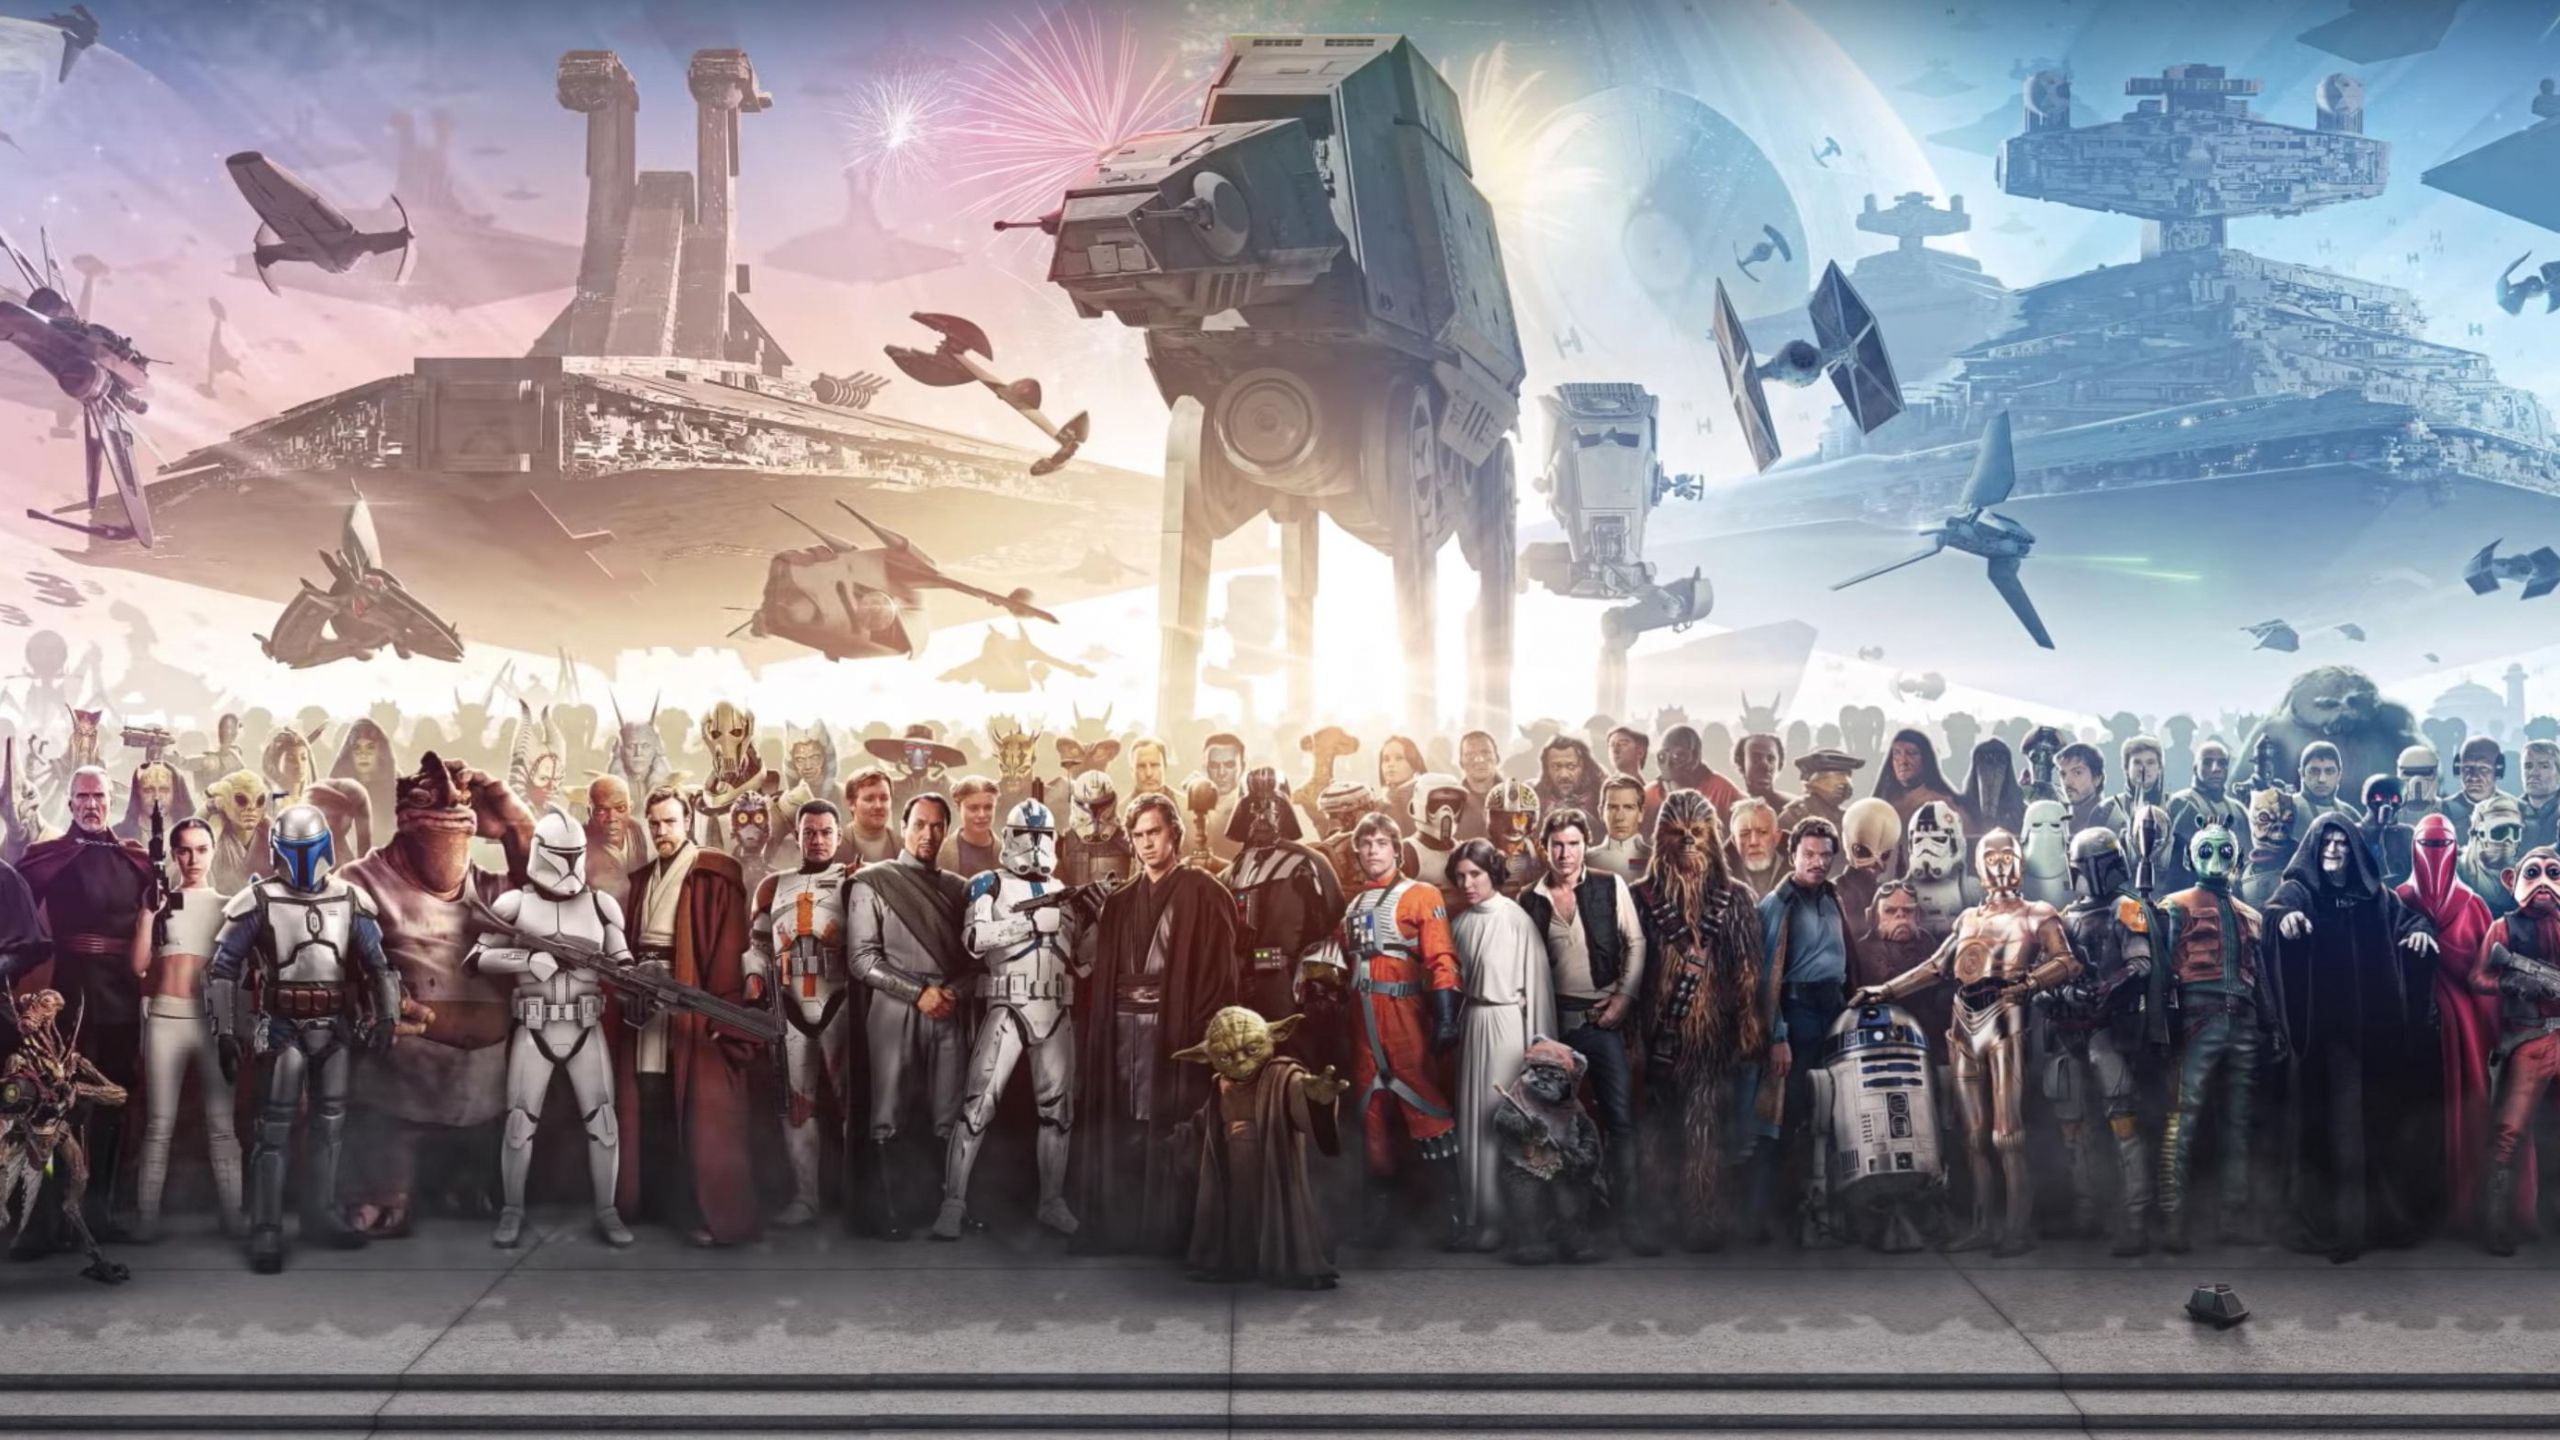 Epic Star Wars Wallpaper In 2560x1440 Resolution